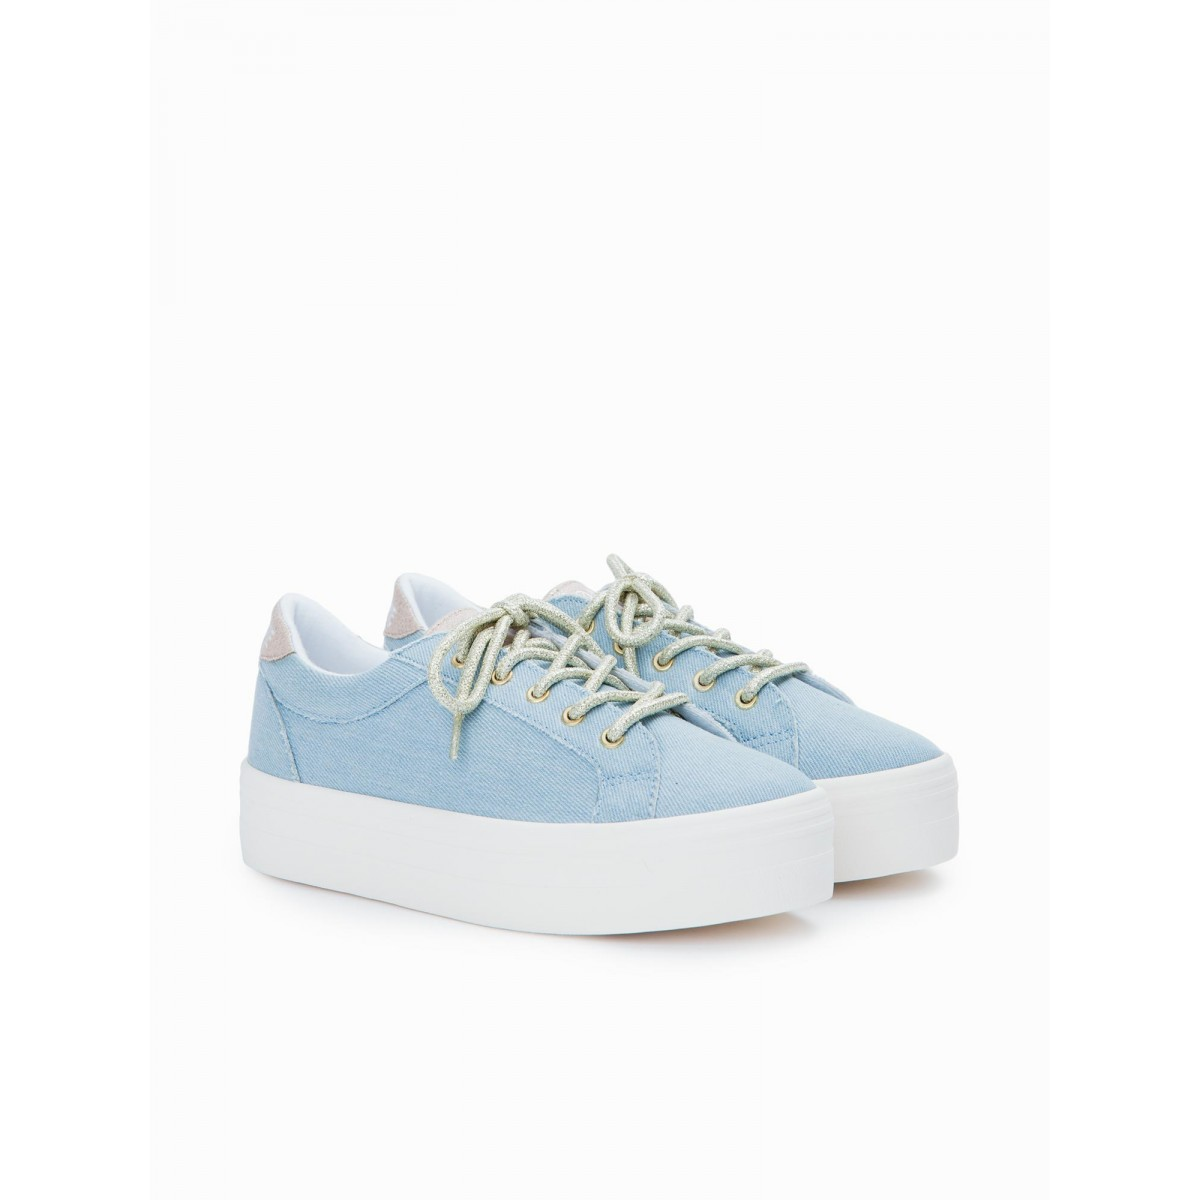 No Name PLATO BRIDGE - DENIM - CELESTE FOX OFFWHITE